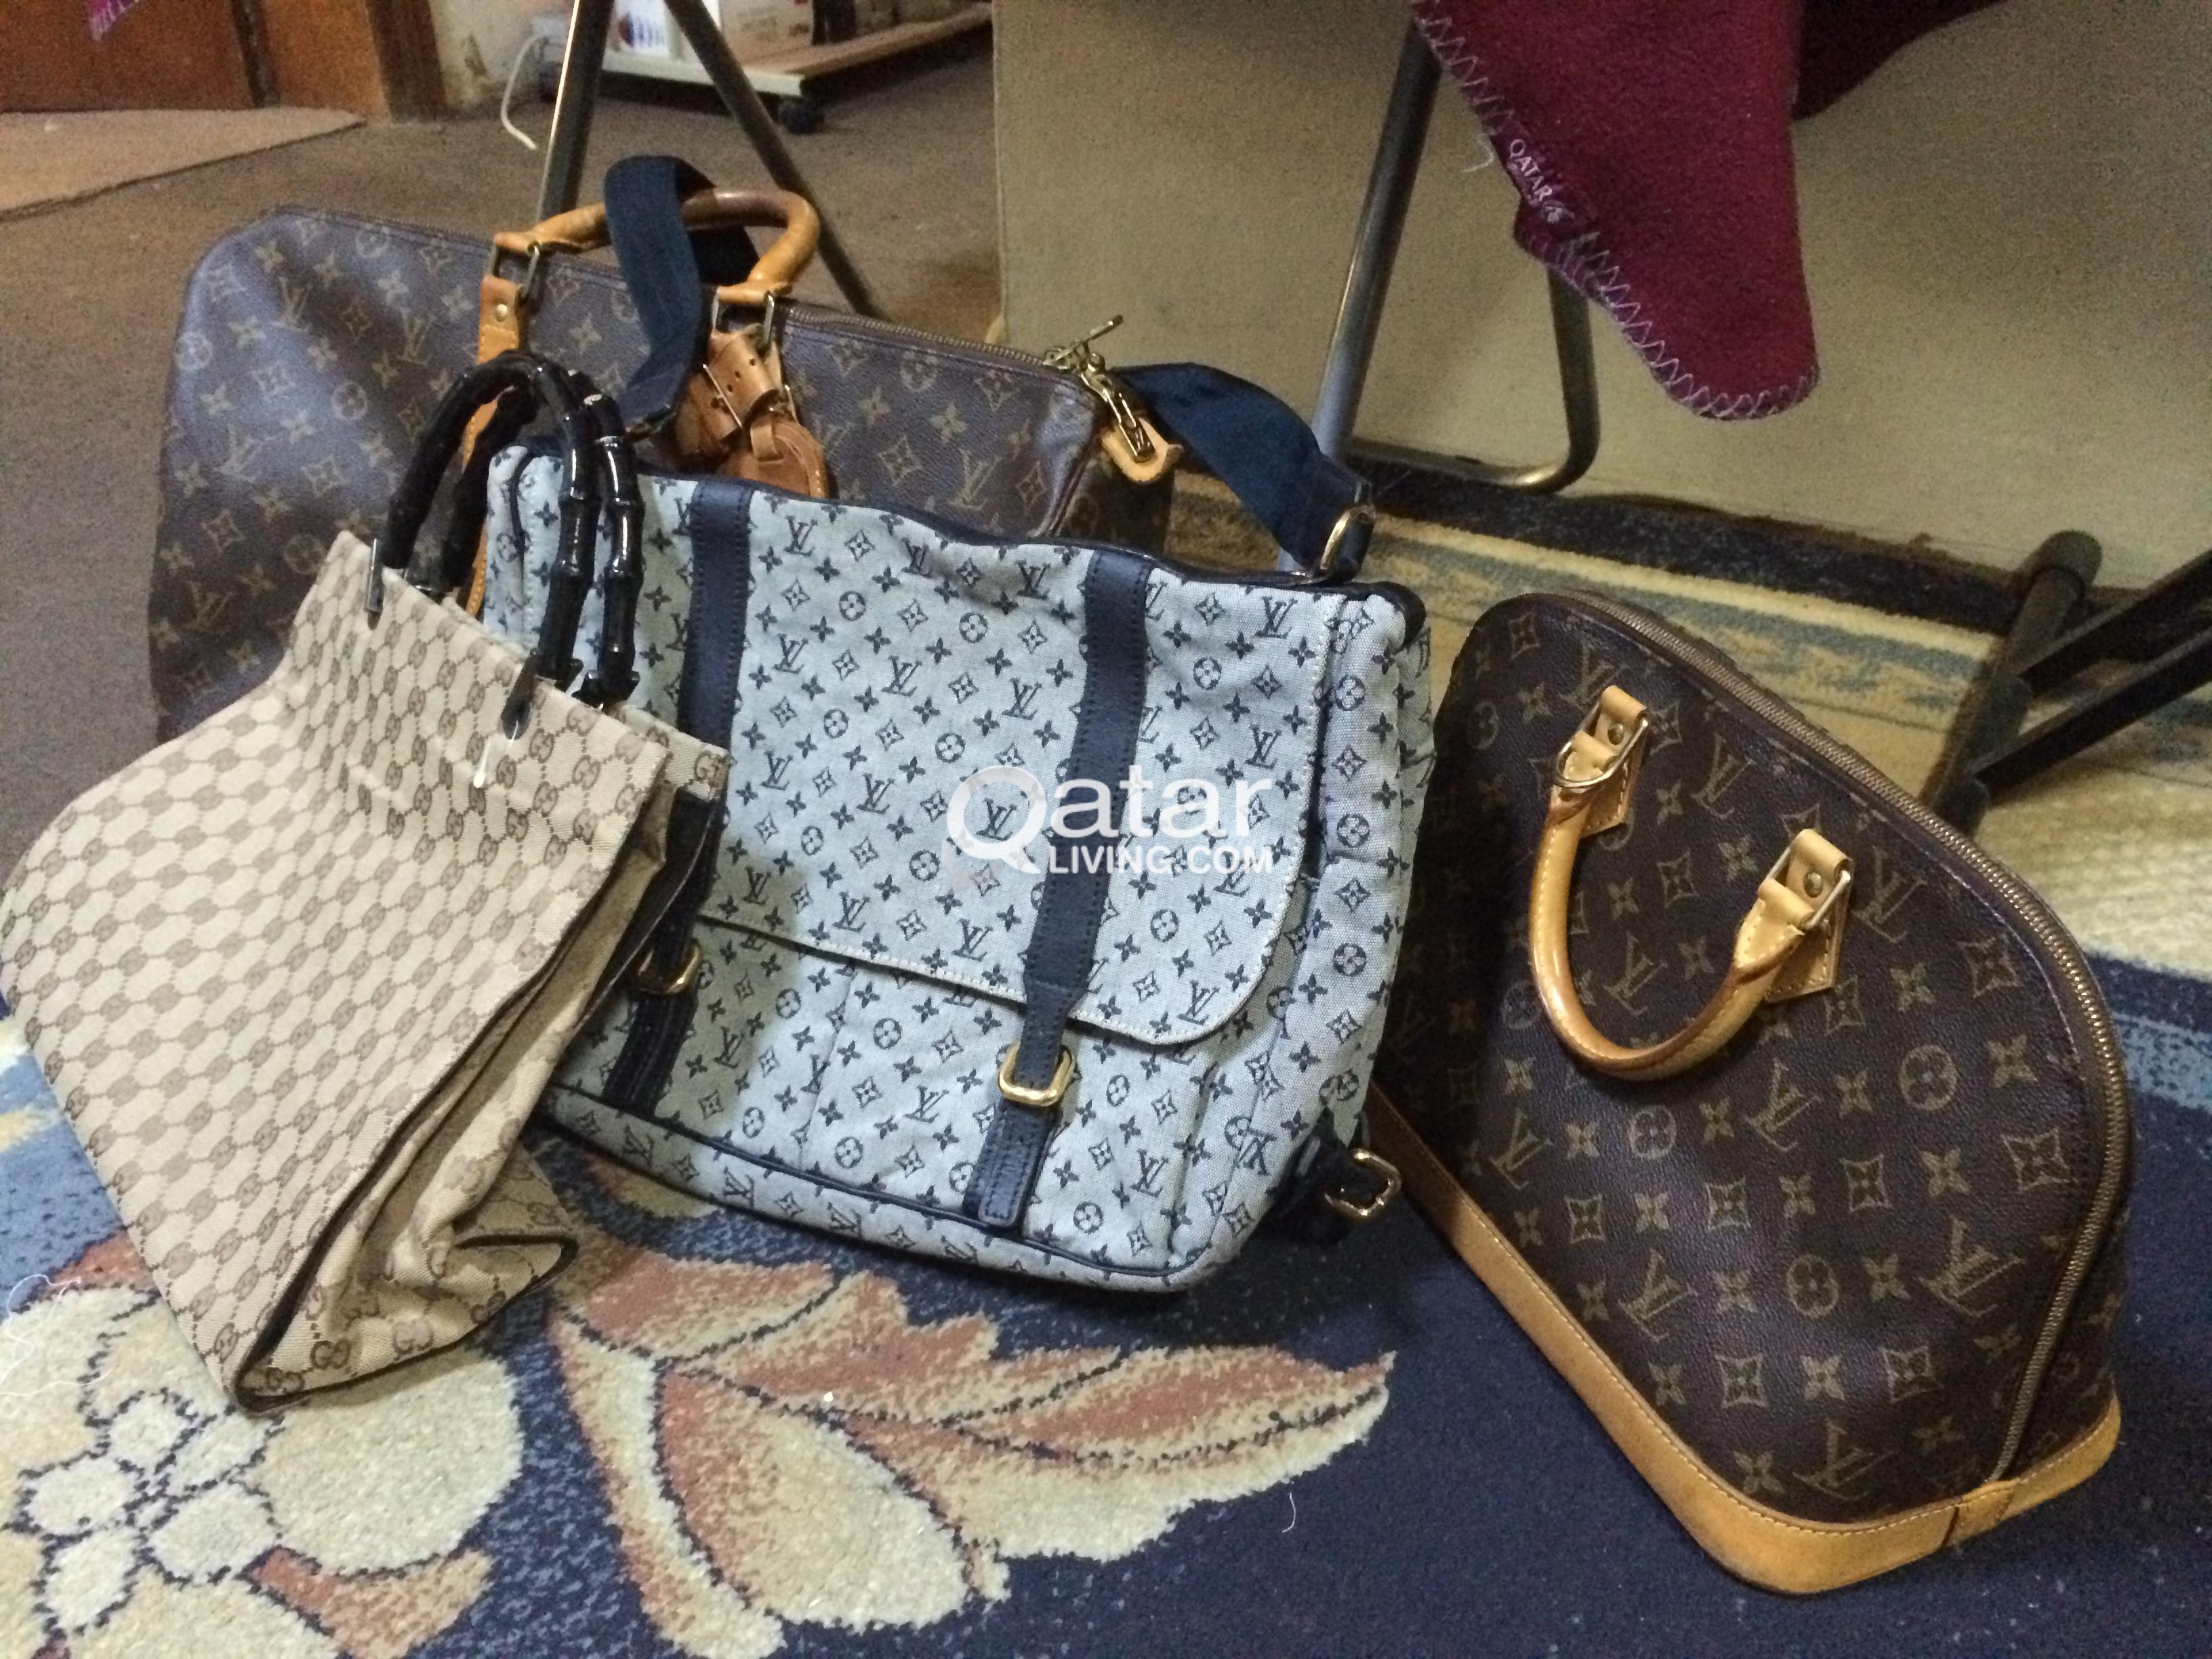 f7e9e968676c title · title · title · title · title. Information. I am selling secondhand  Louis Vuitton bags.